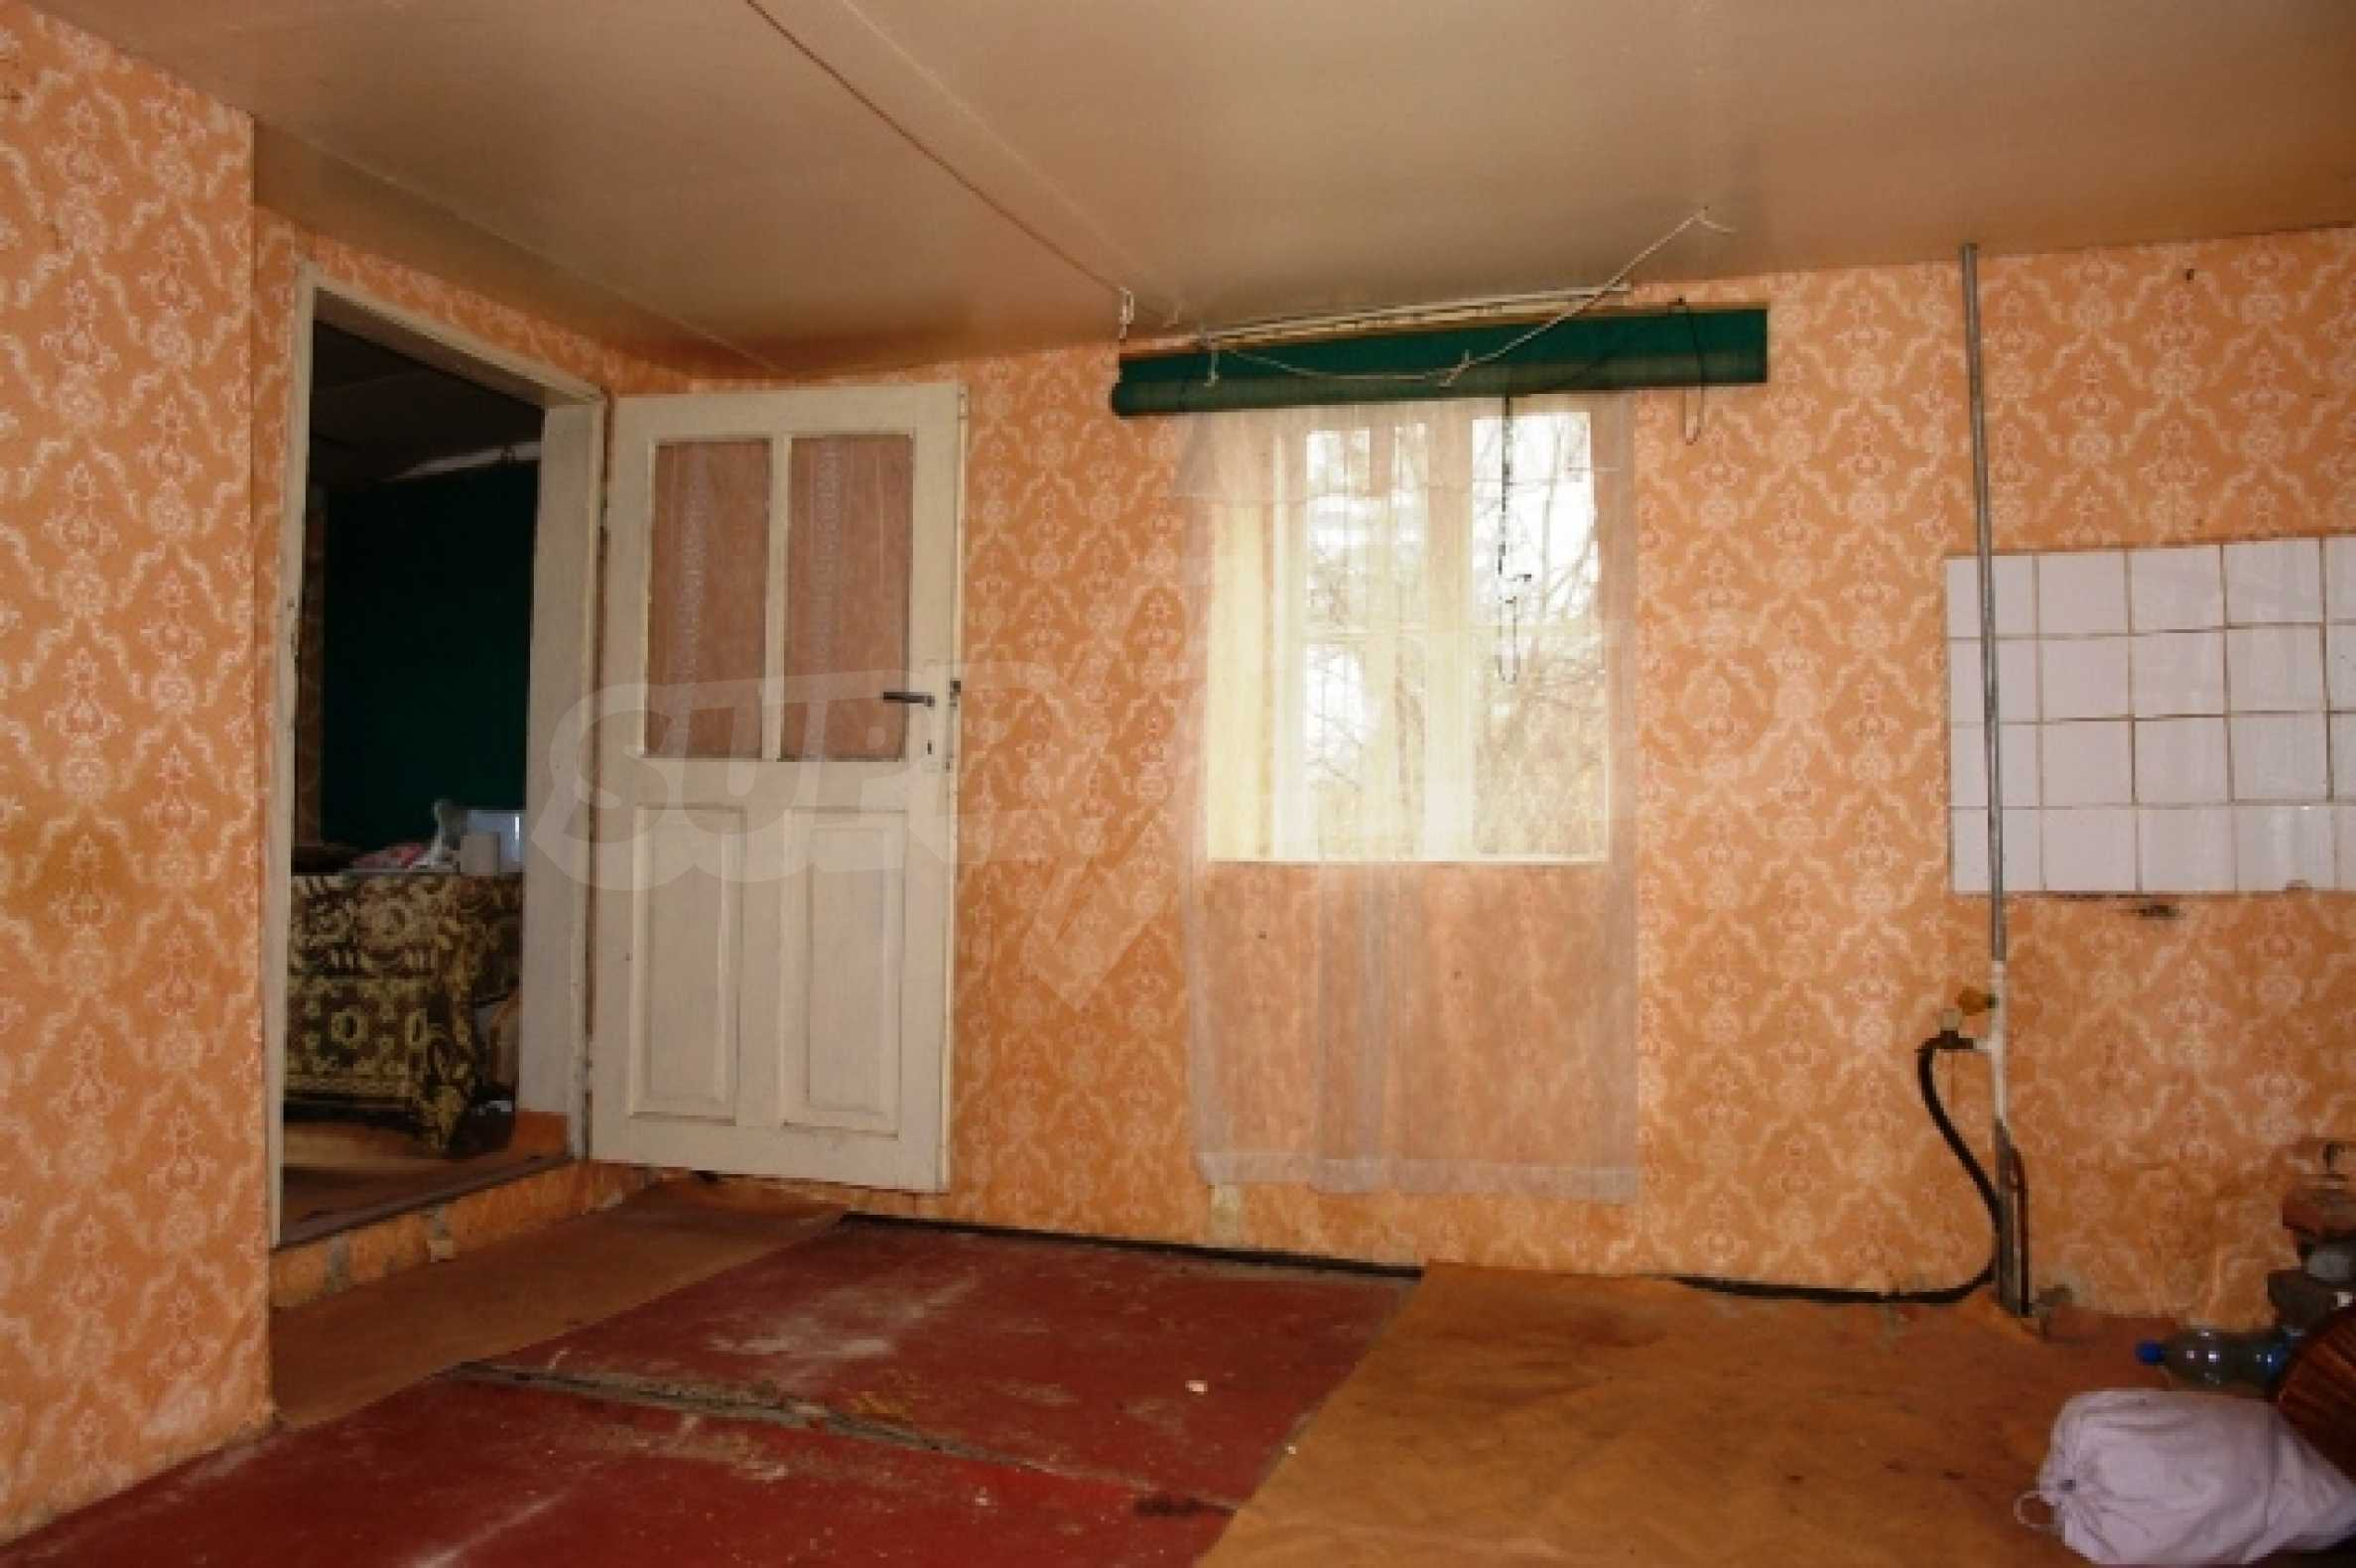 Two-storey 3-Bedroom house in Mogilino village, Ruse district 8